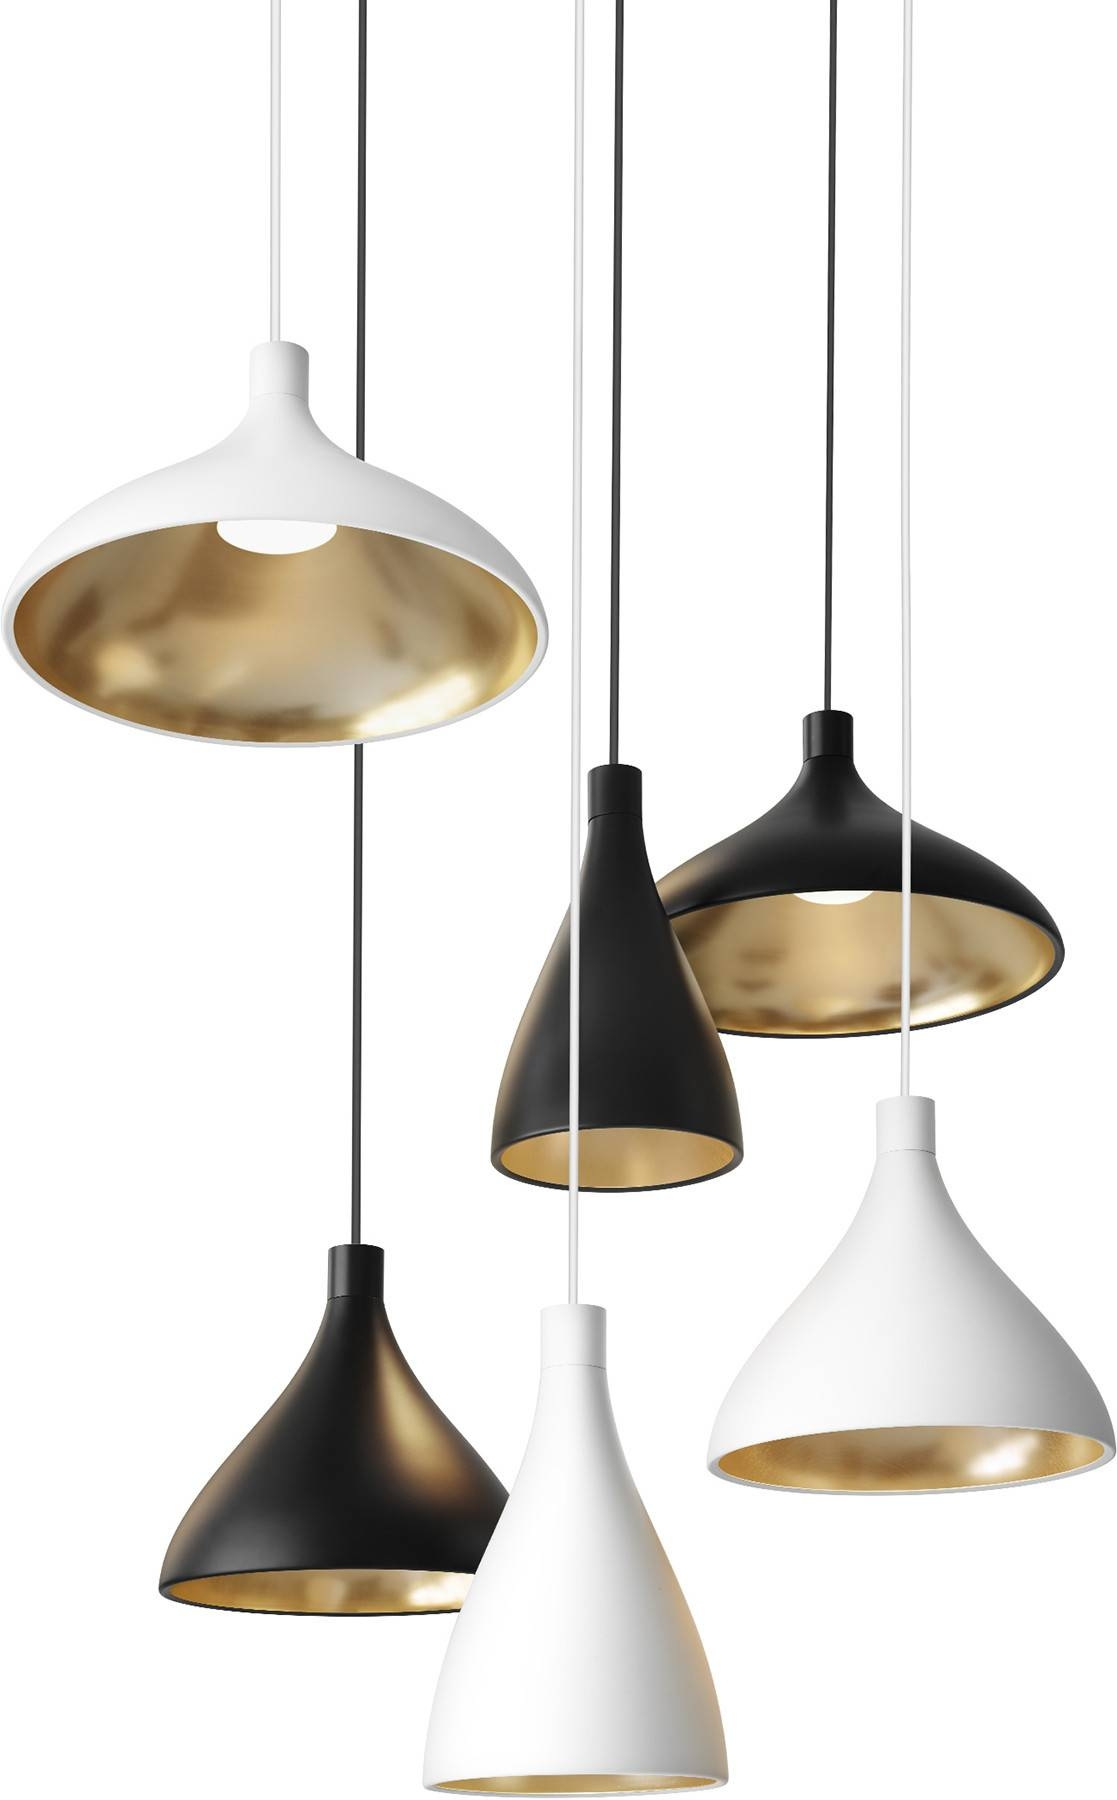 Astonishing Contemporary Pendant Lighting 90 On Short Pendant Pertaining To Short Pendant Lights Fixtures (View 2 of 15)